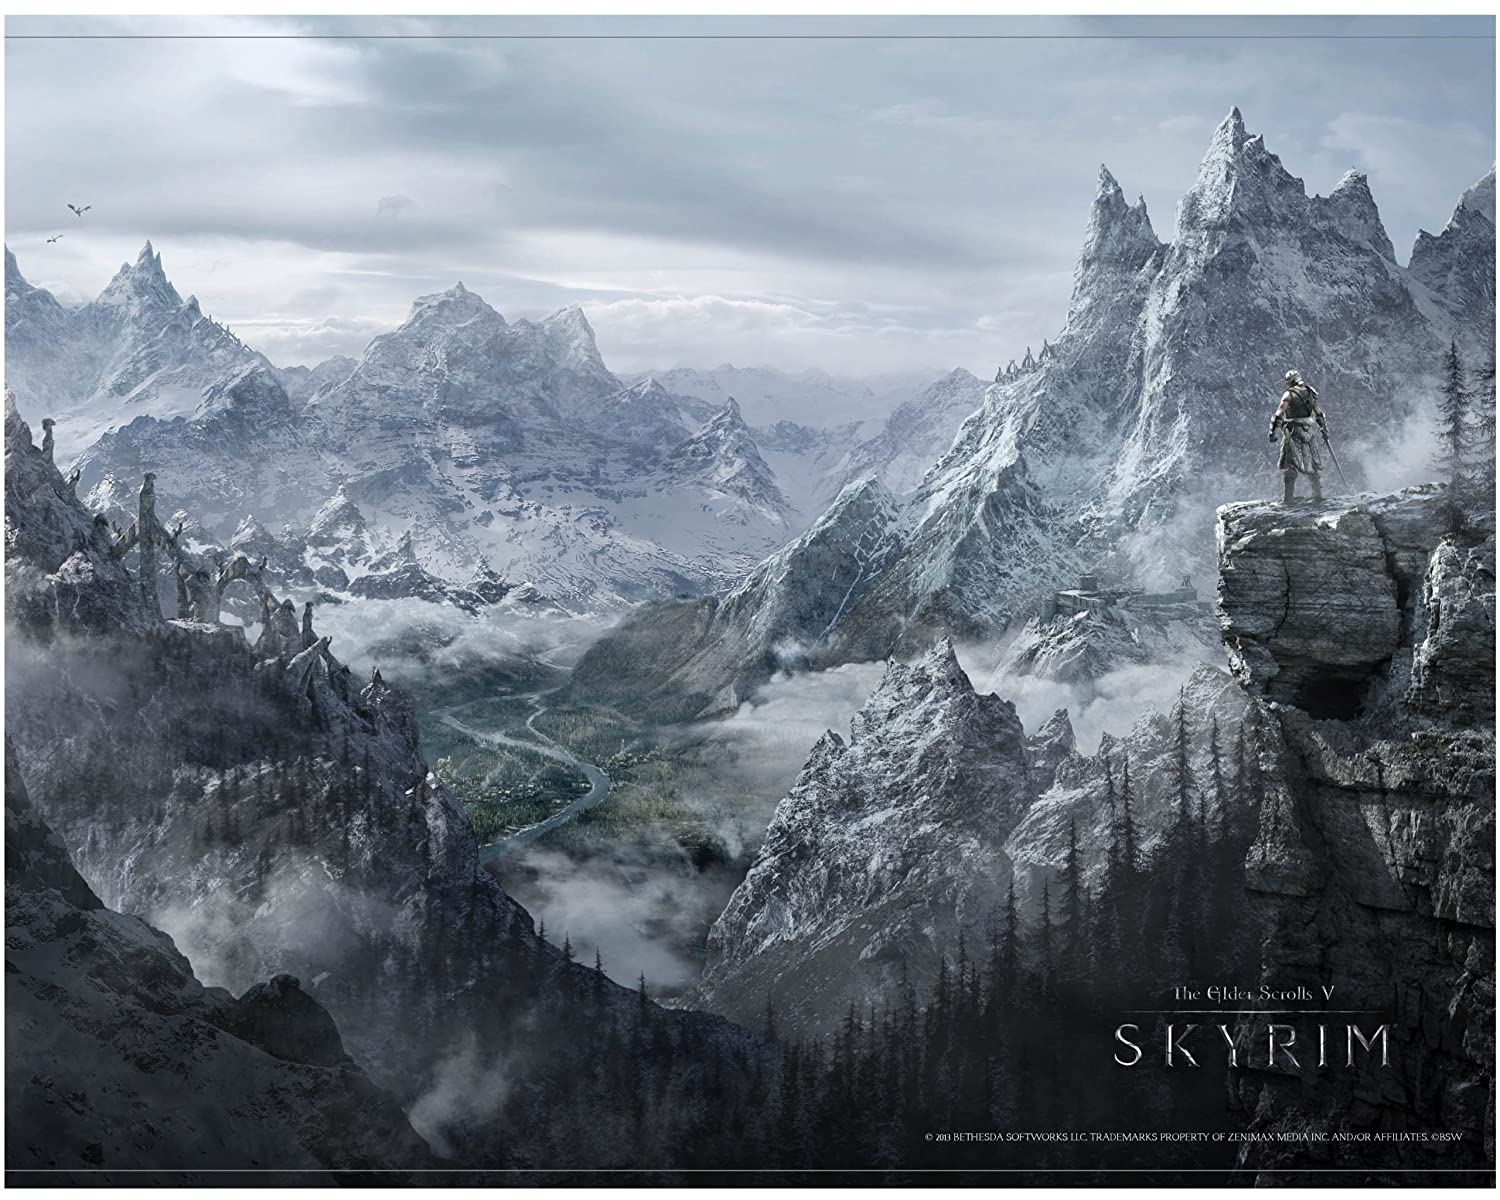 Skyrim Wallscroll Valley [Importación Alemana]: Amazon.es ...